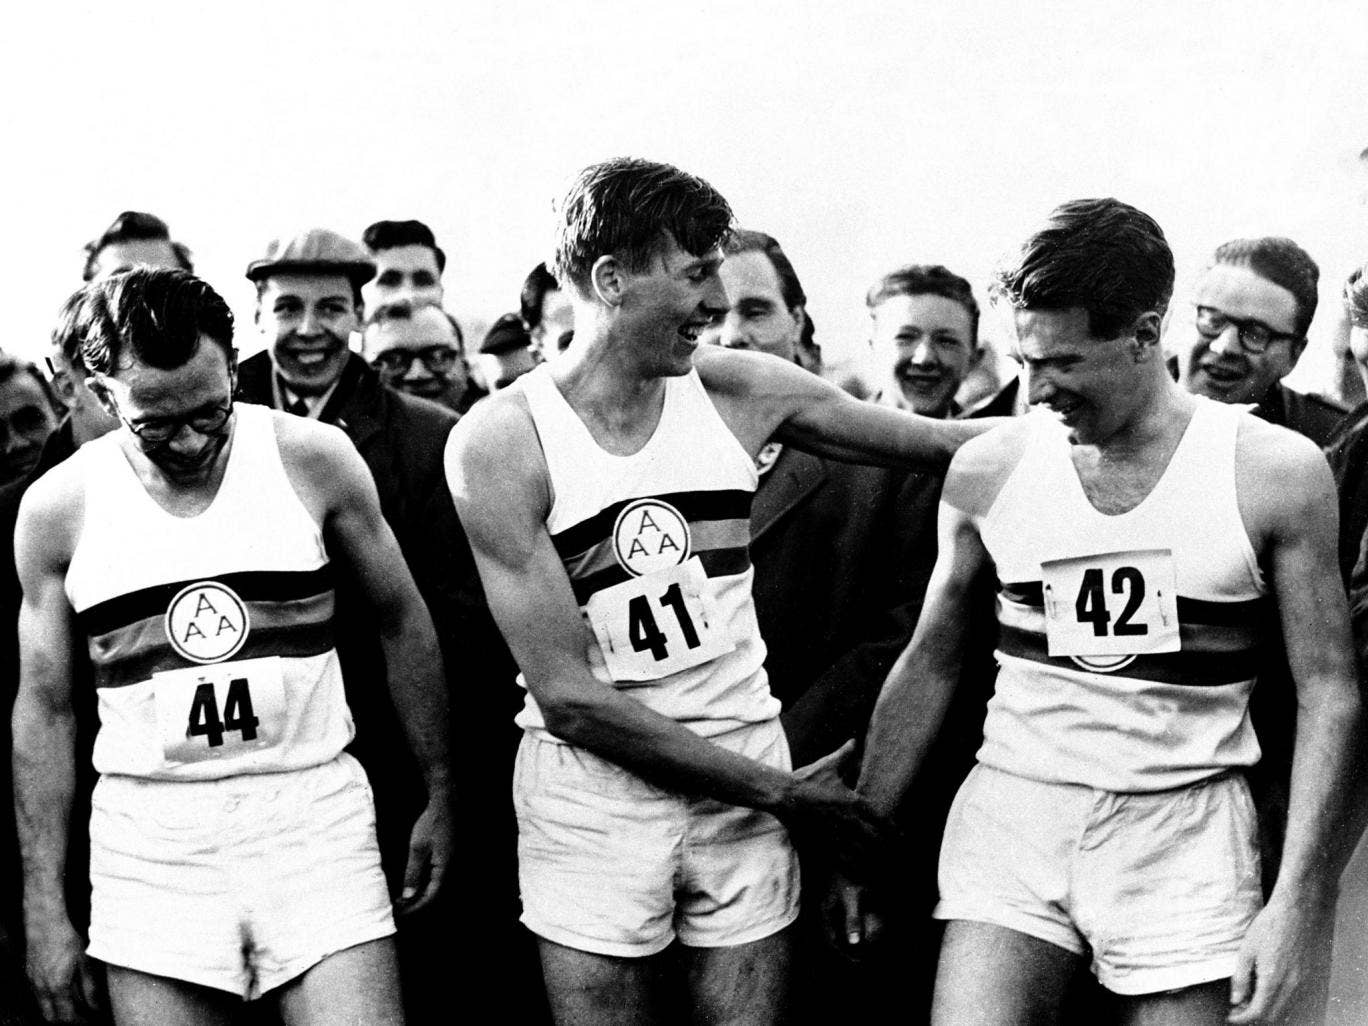 Roger Bannister celebrates with Chris Chataway in 1954 as he becomes the first man to run a sub-four minute mile